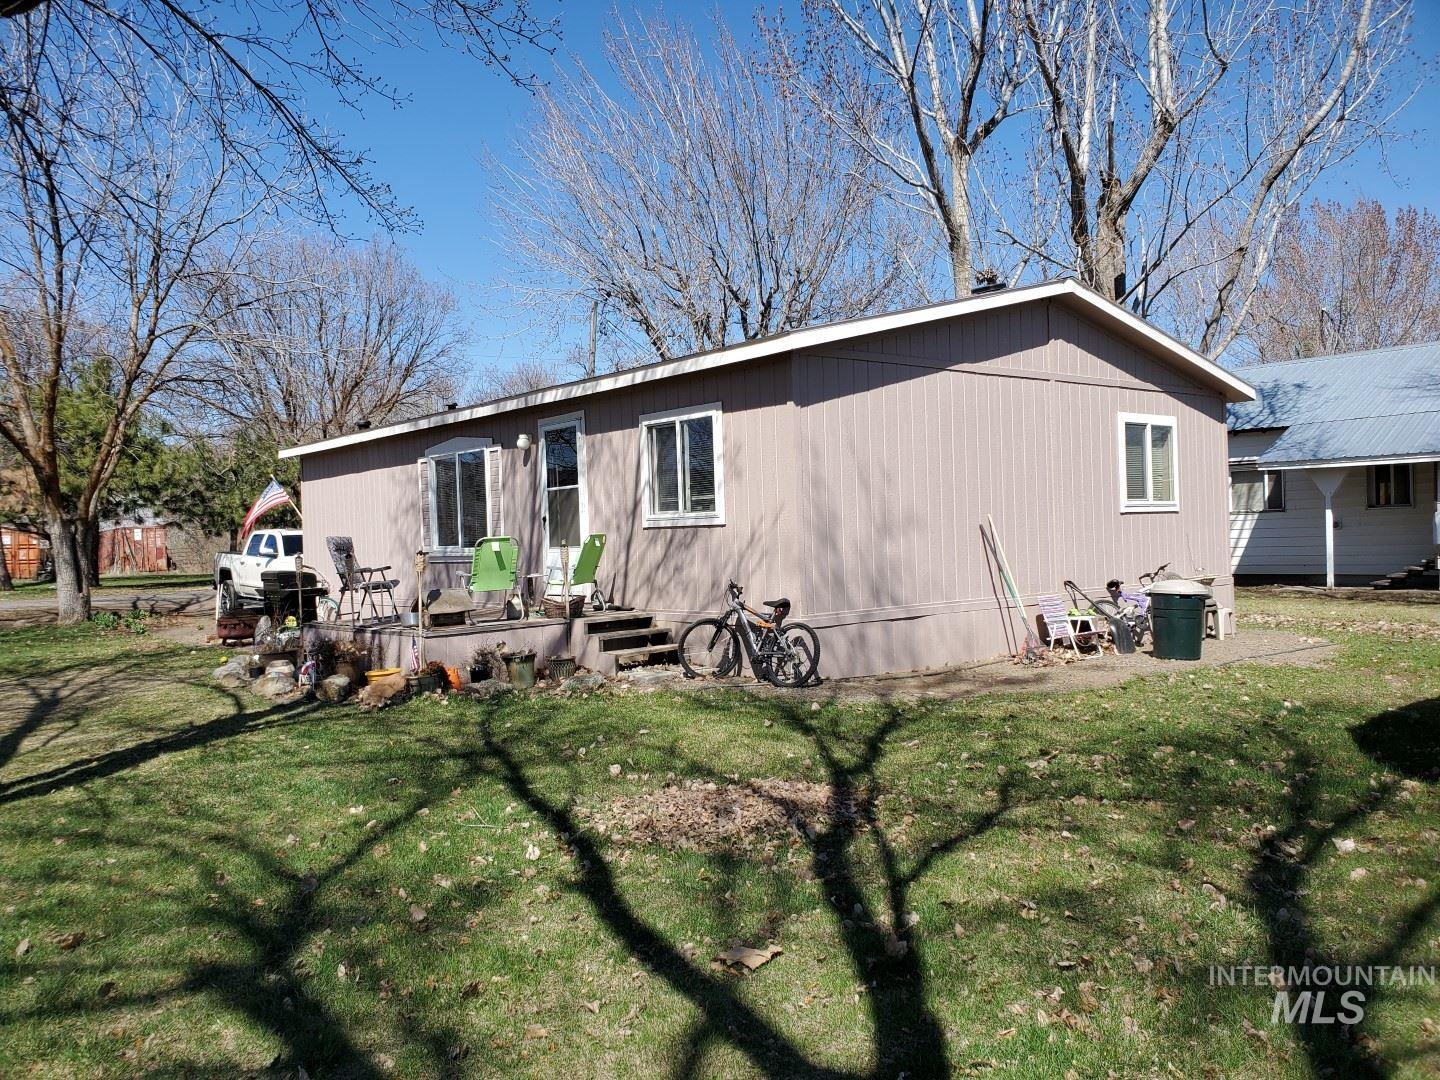 405 S Hornet St Property Photo - Council, ID real estate listing